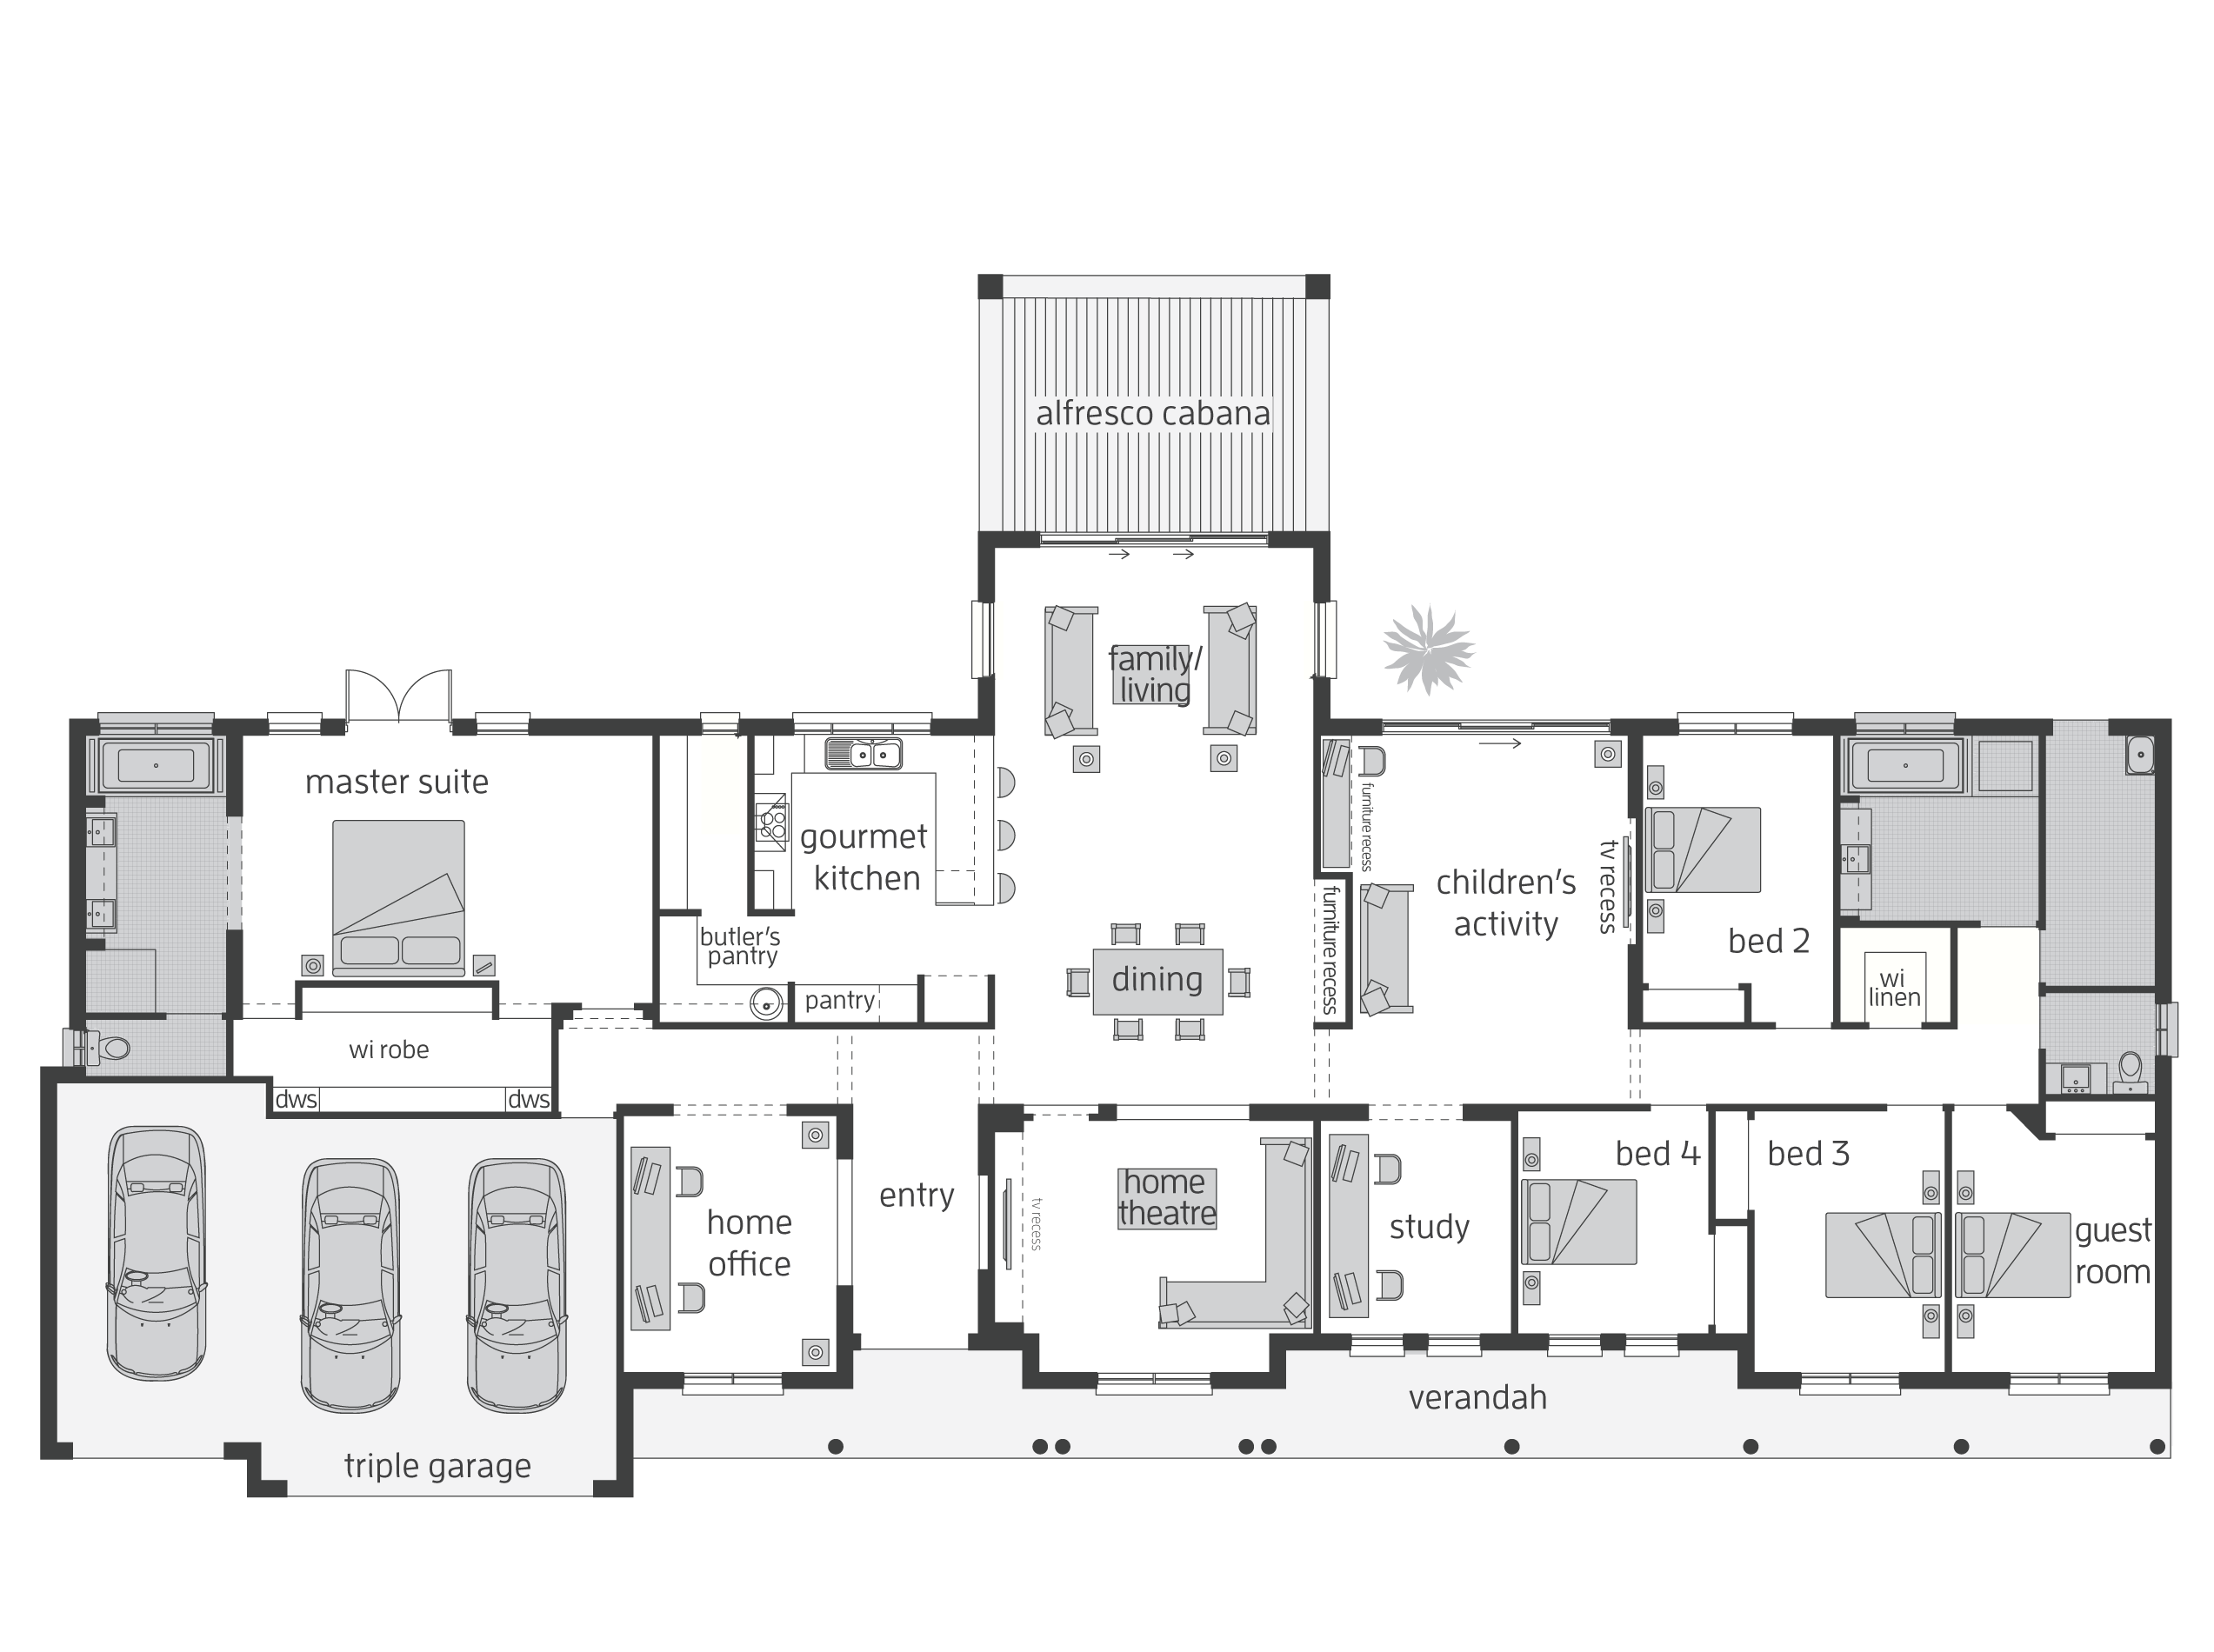 House Plans And More, Floor